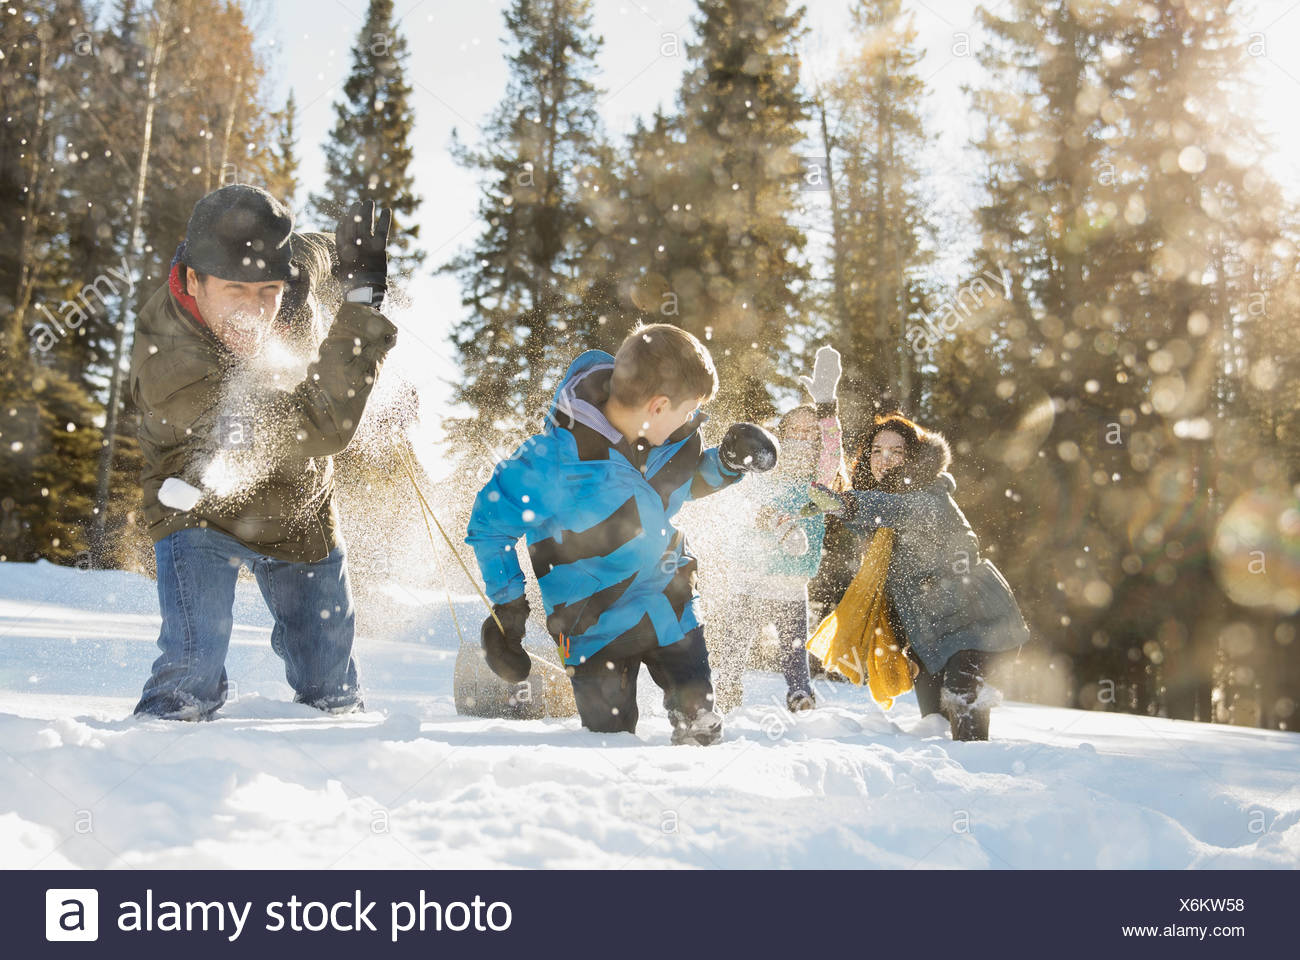 Family having snowball fight outdoors - Stock Image